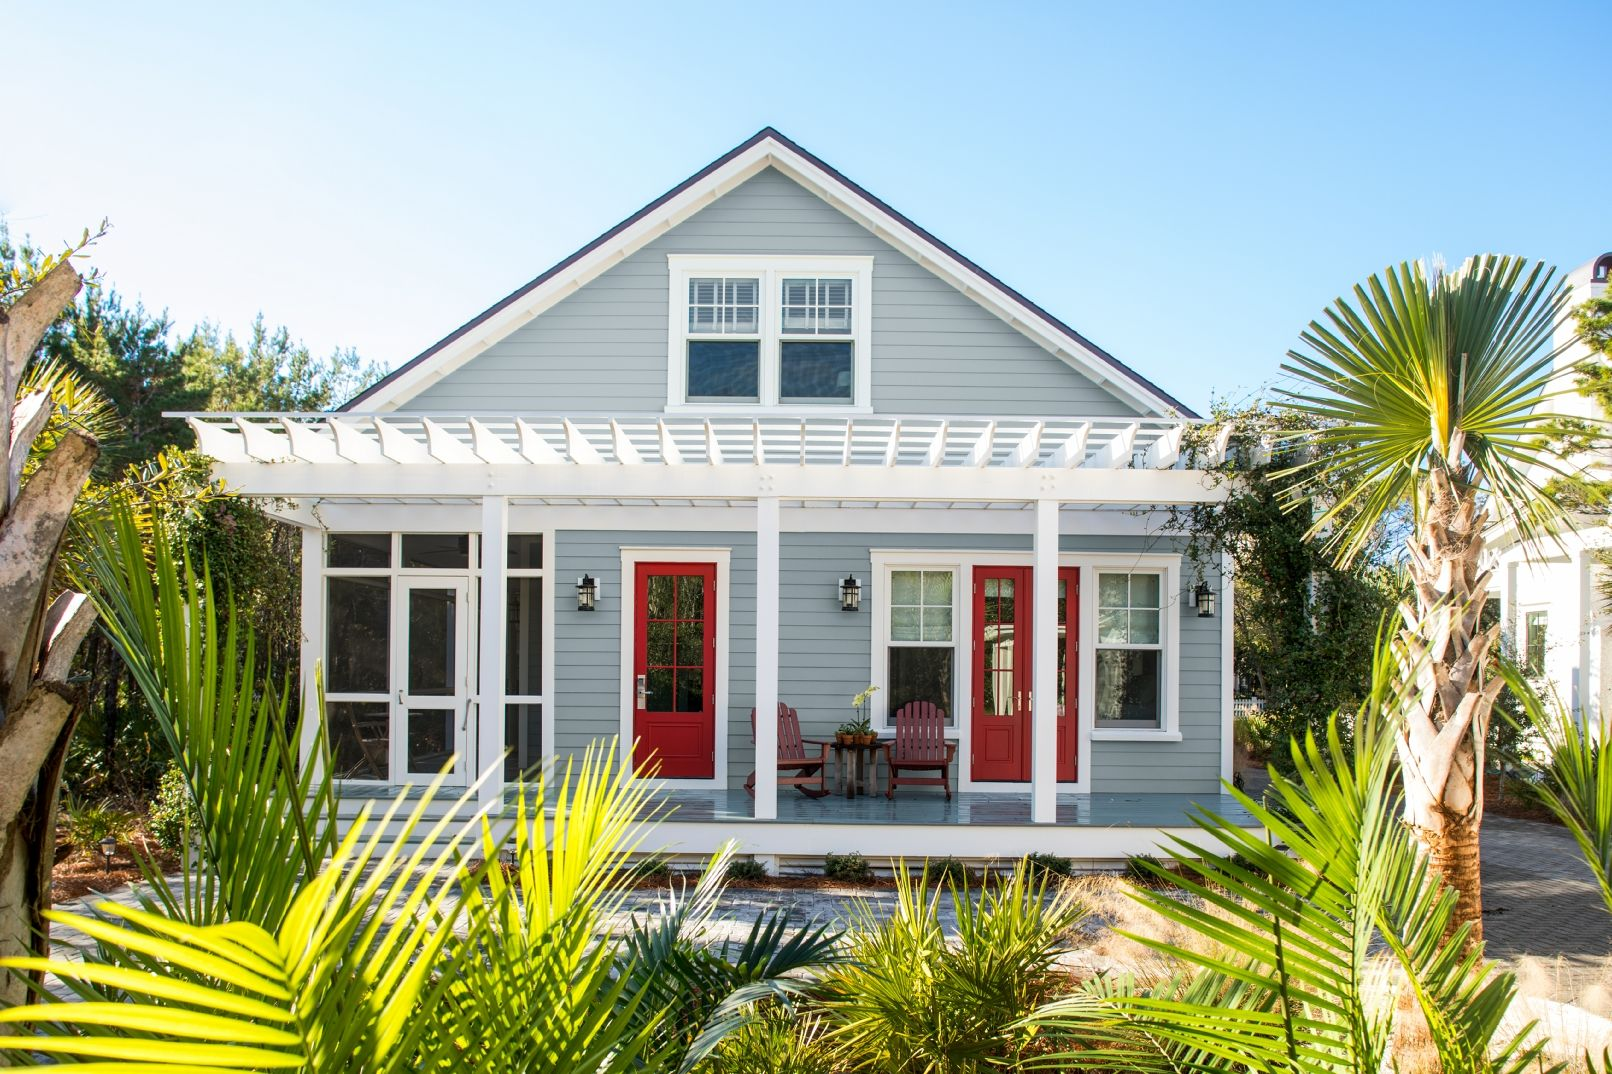 Home Exterior Color Ideas Inspiration Benjamin Moore House Paint Exterior House Exterior Blue House Exterior